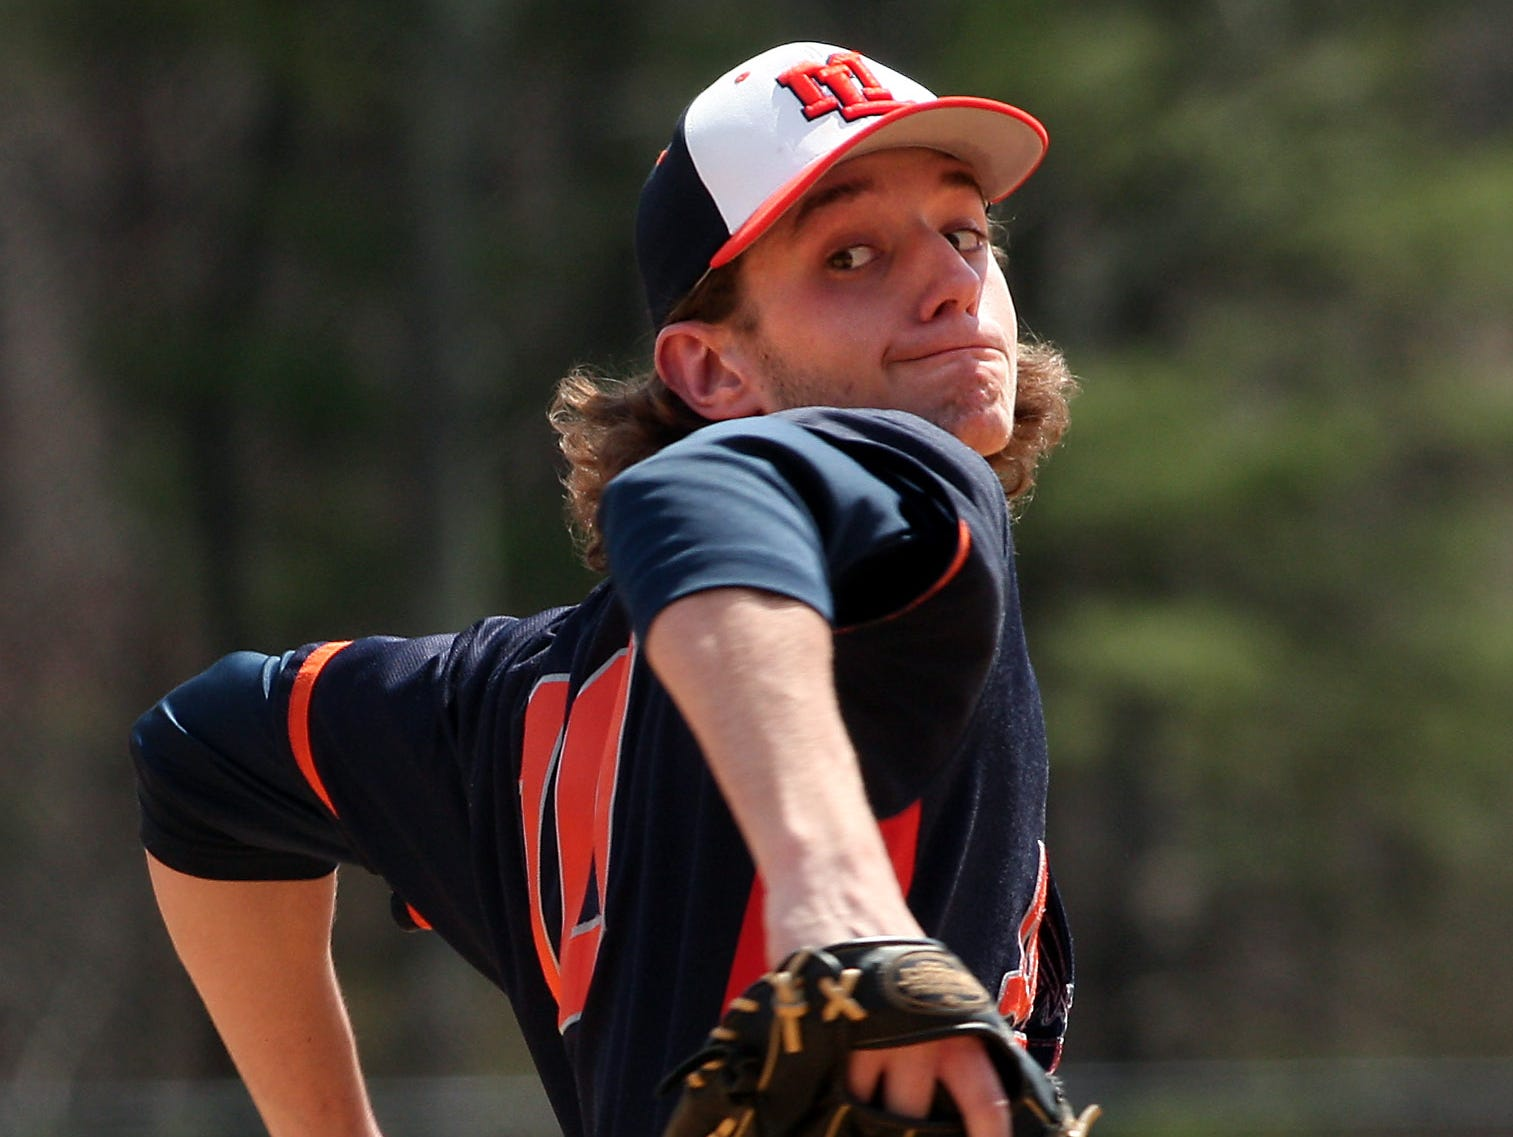 Mountain Lakes senior Kevin Stewart pitches against Morris Knolls in a MCT prelim.